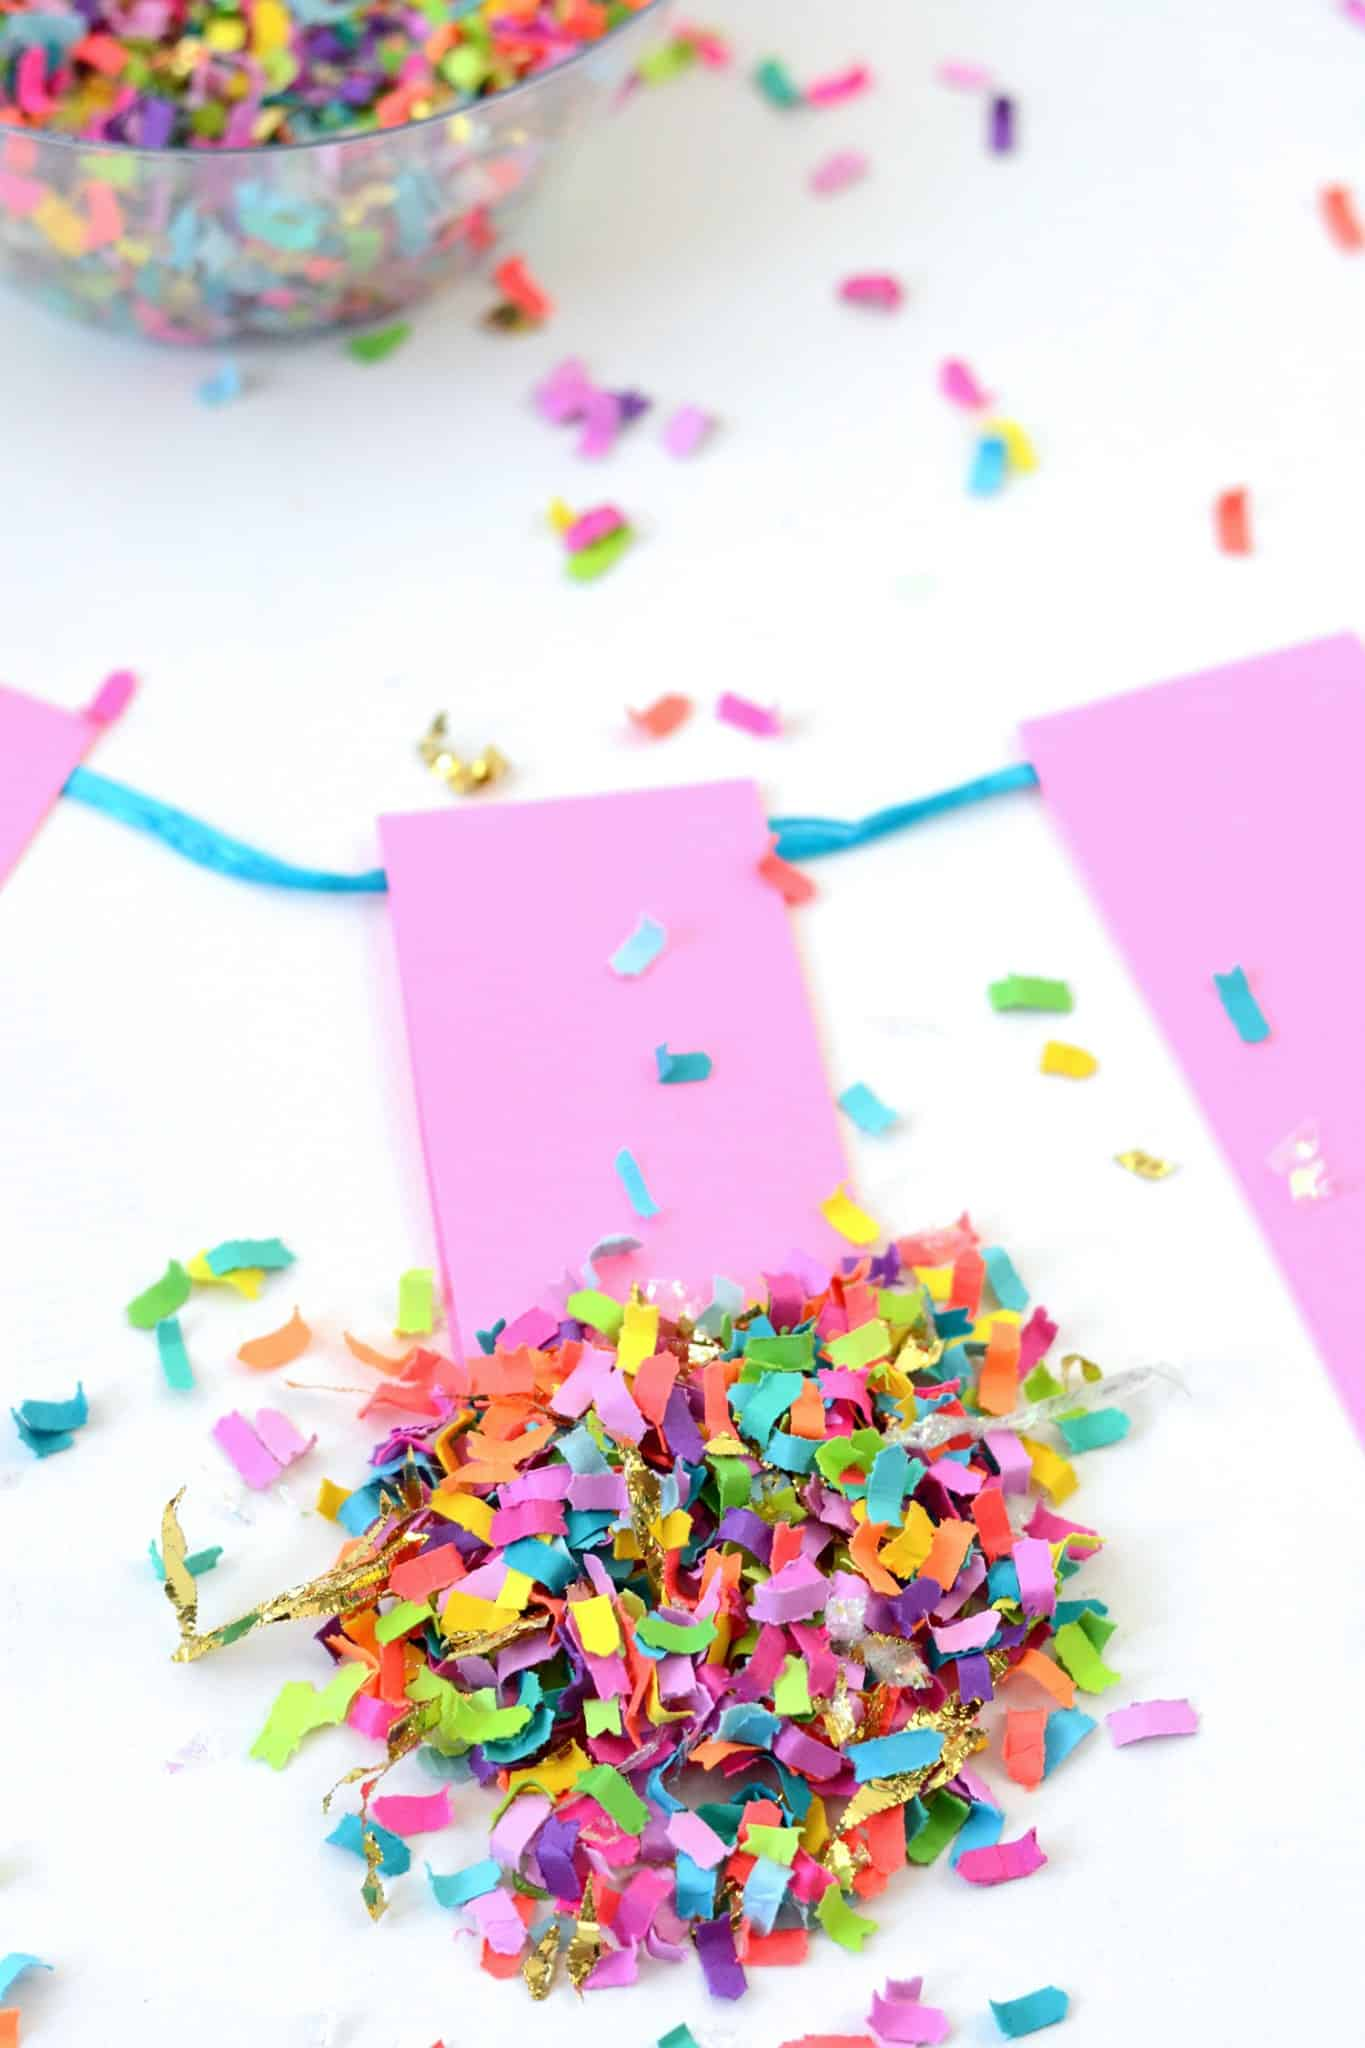 Do you want to learn the easiest way EVER to make a banner? Here it is! Use cardstock, Mod Podge, confetti, and a few other supplies. ANYONE can do it!